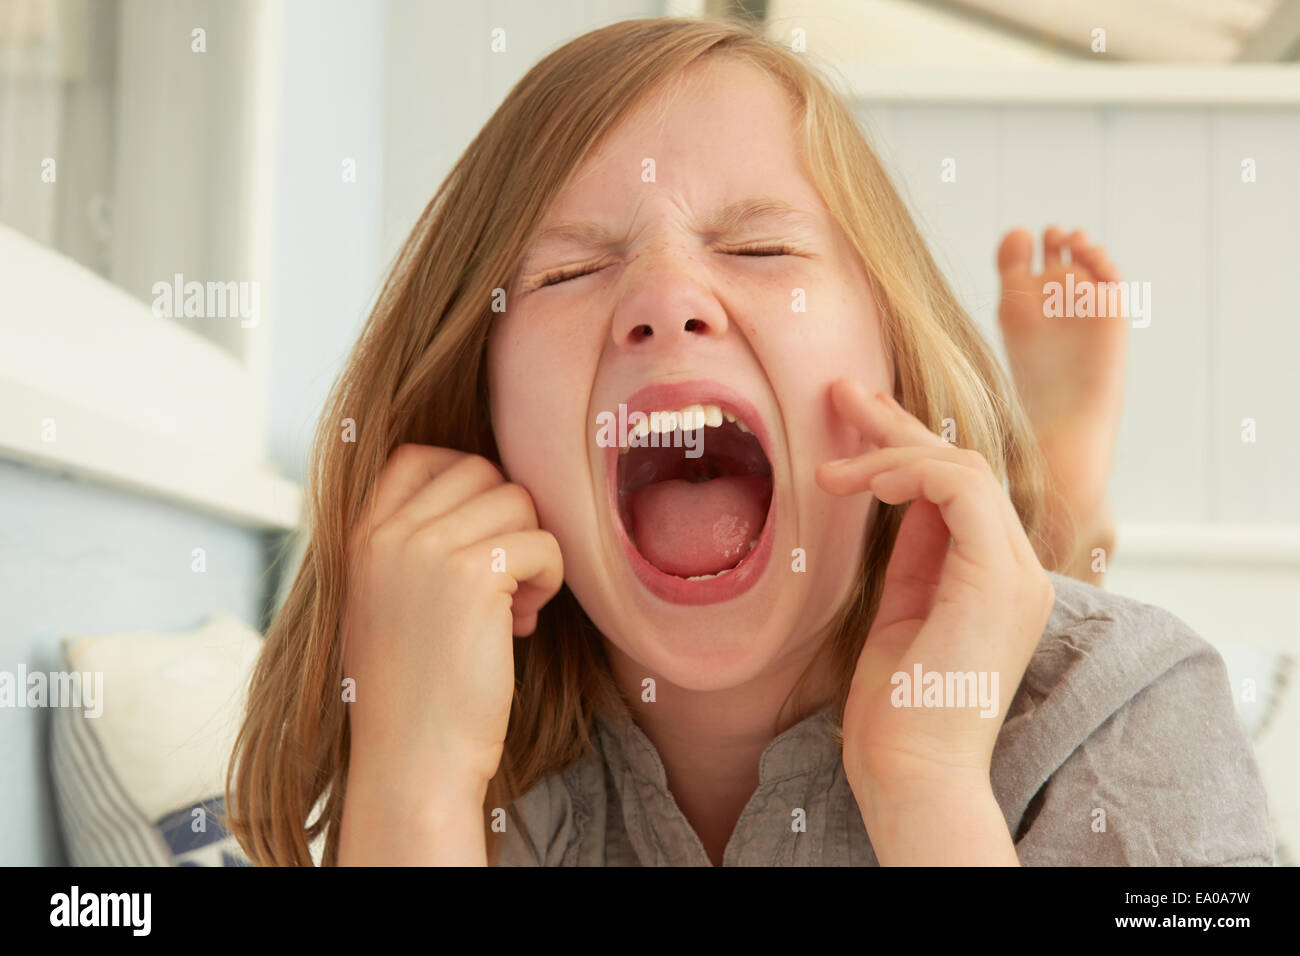 Girl with eyes closed screaming in holiday apartment - Stock Image